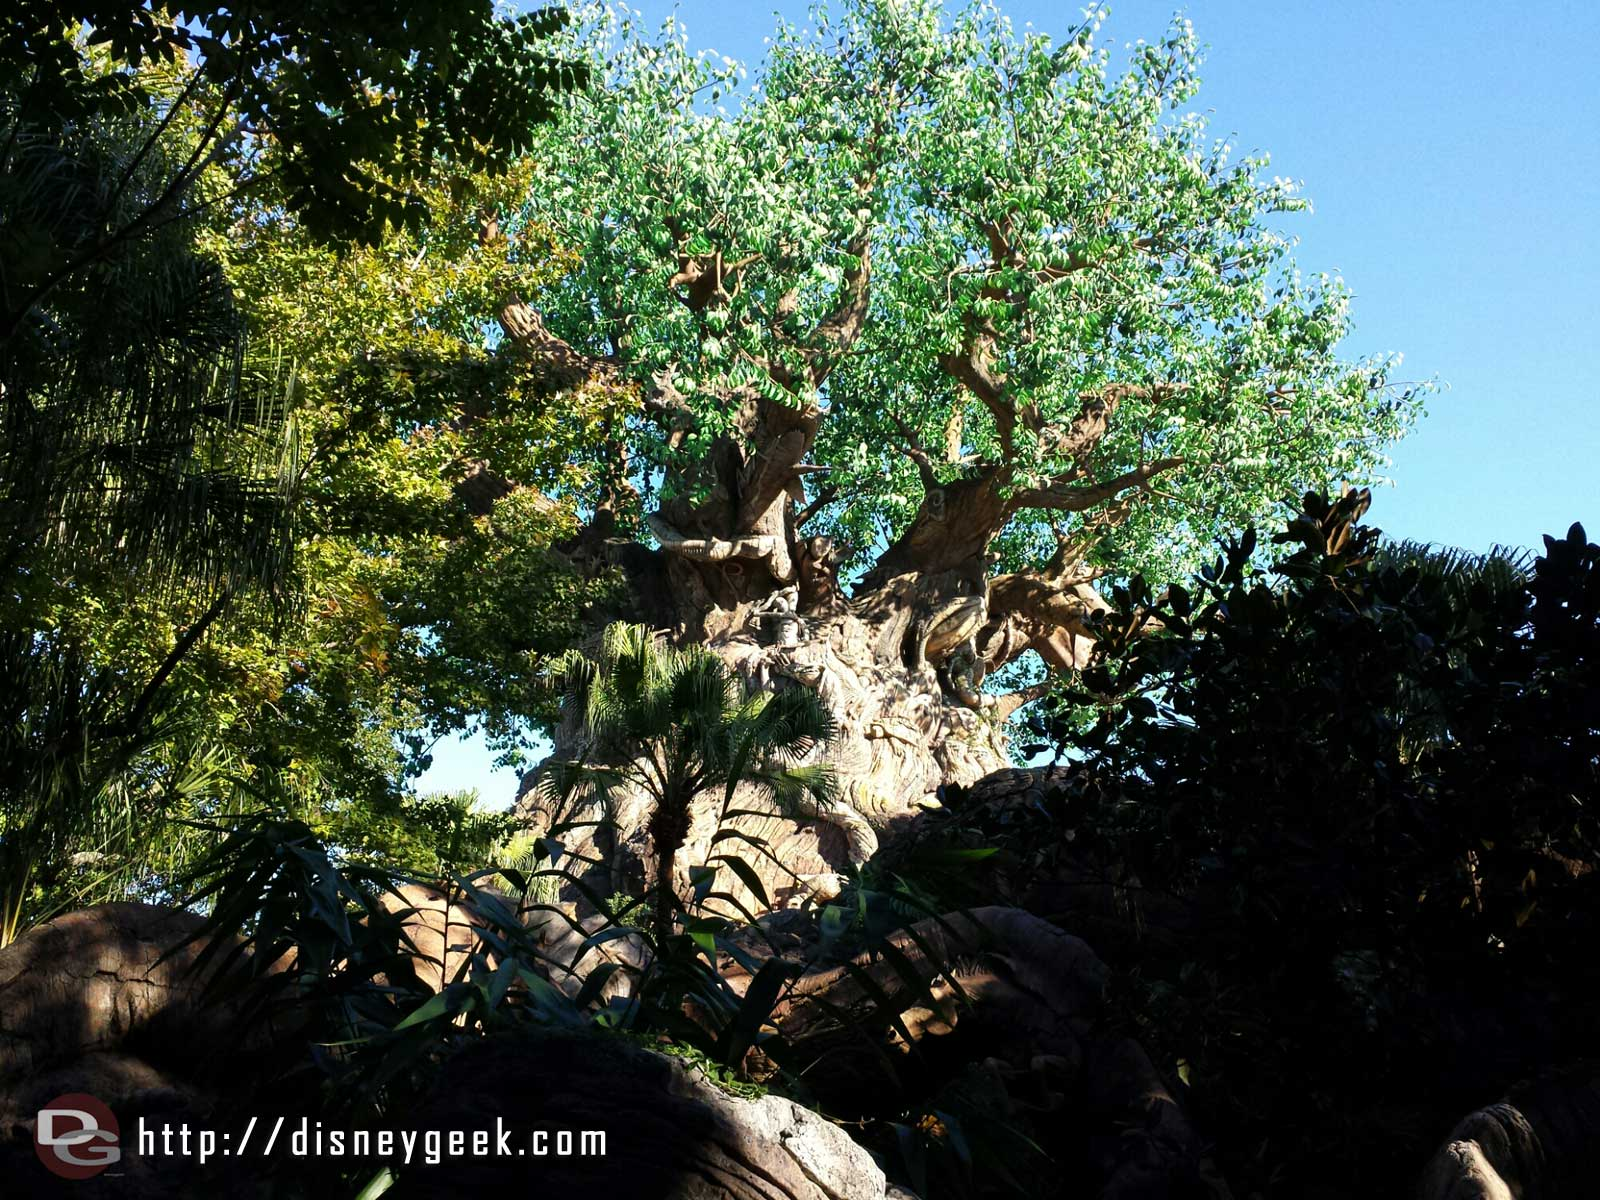 The Tree of Life at Disney's Animal Kingdom #WDW